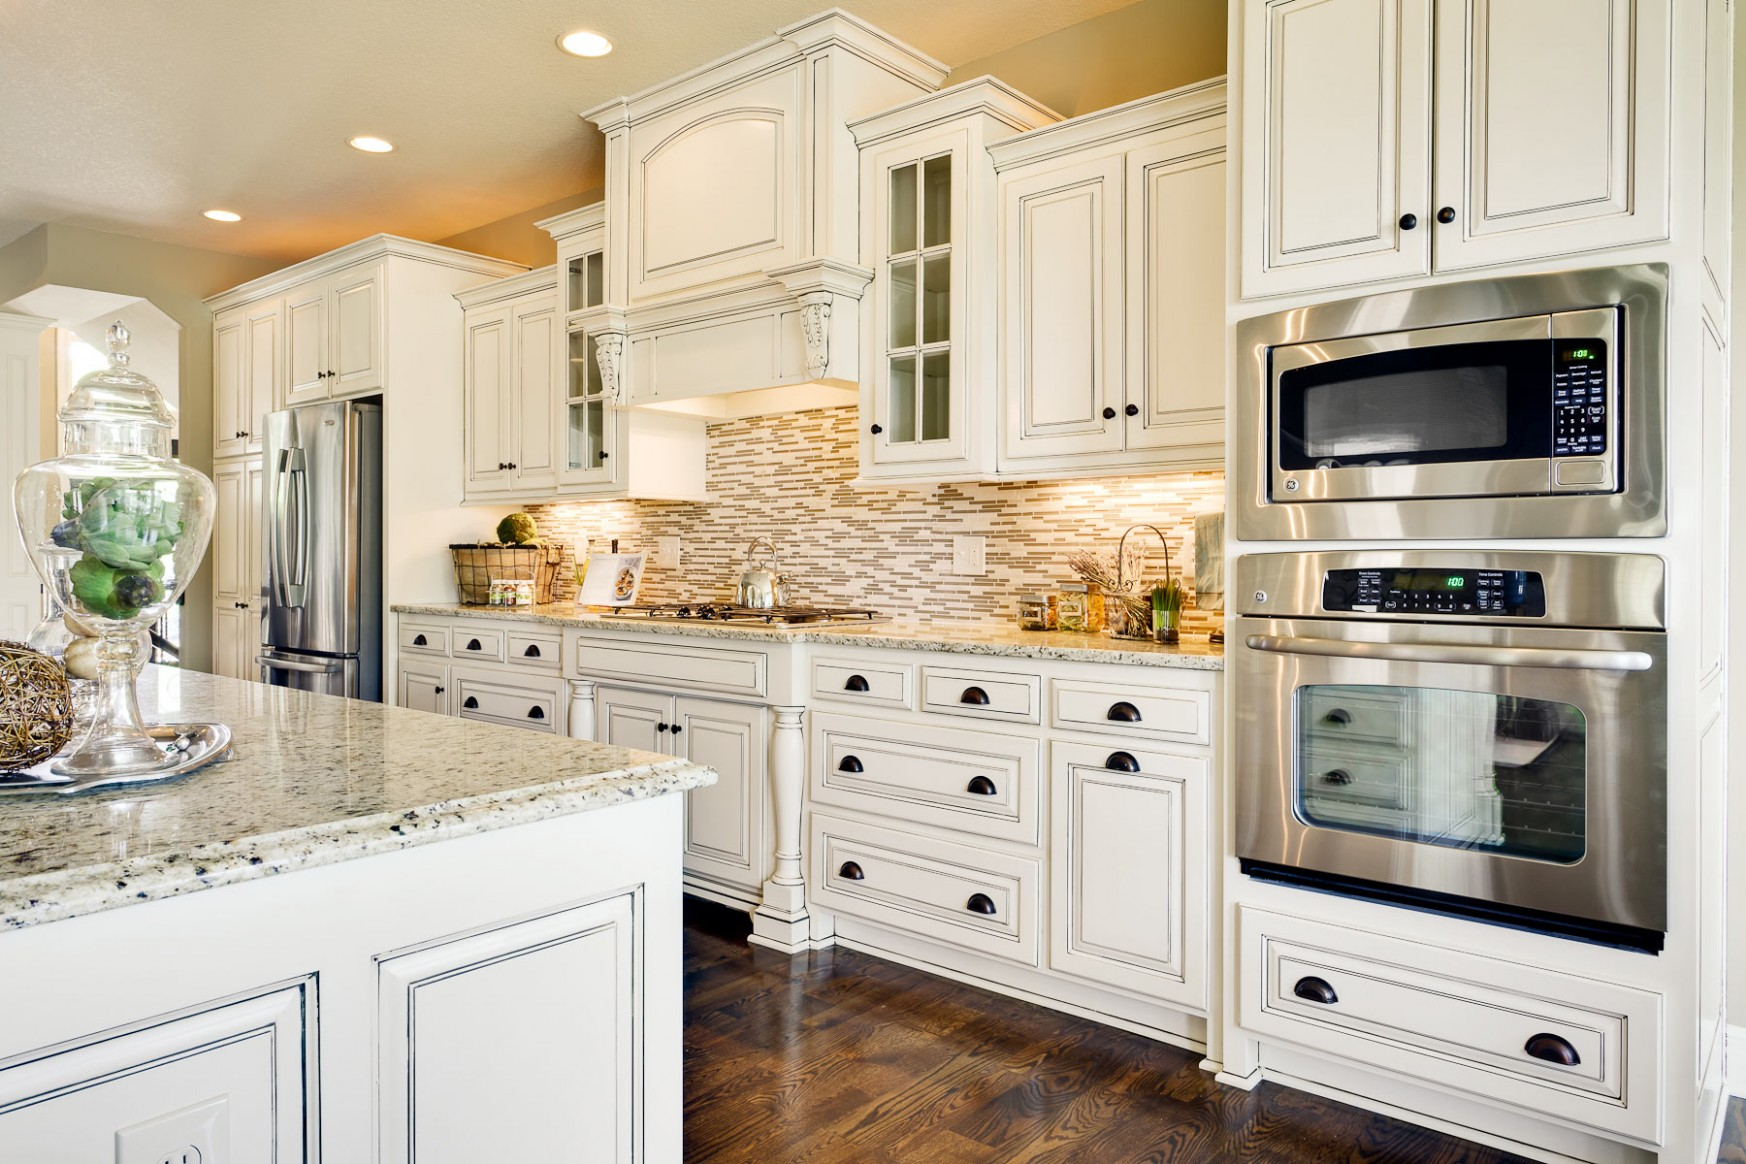 How much do Granite Countertops Cost?  CounterTop Guides - Antique White Kitchen Cabinets With Granite Countertops